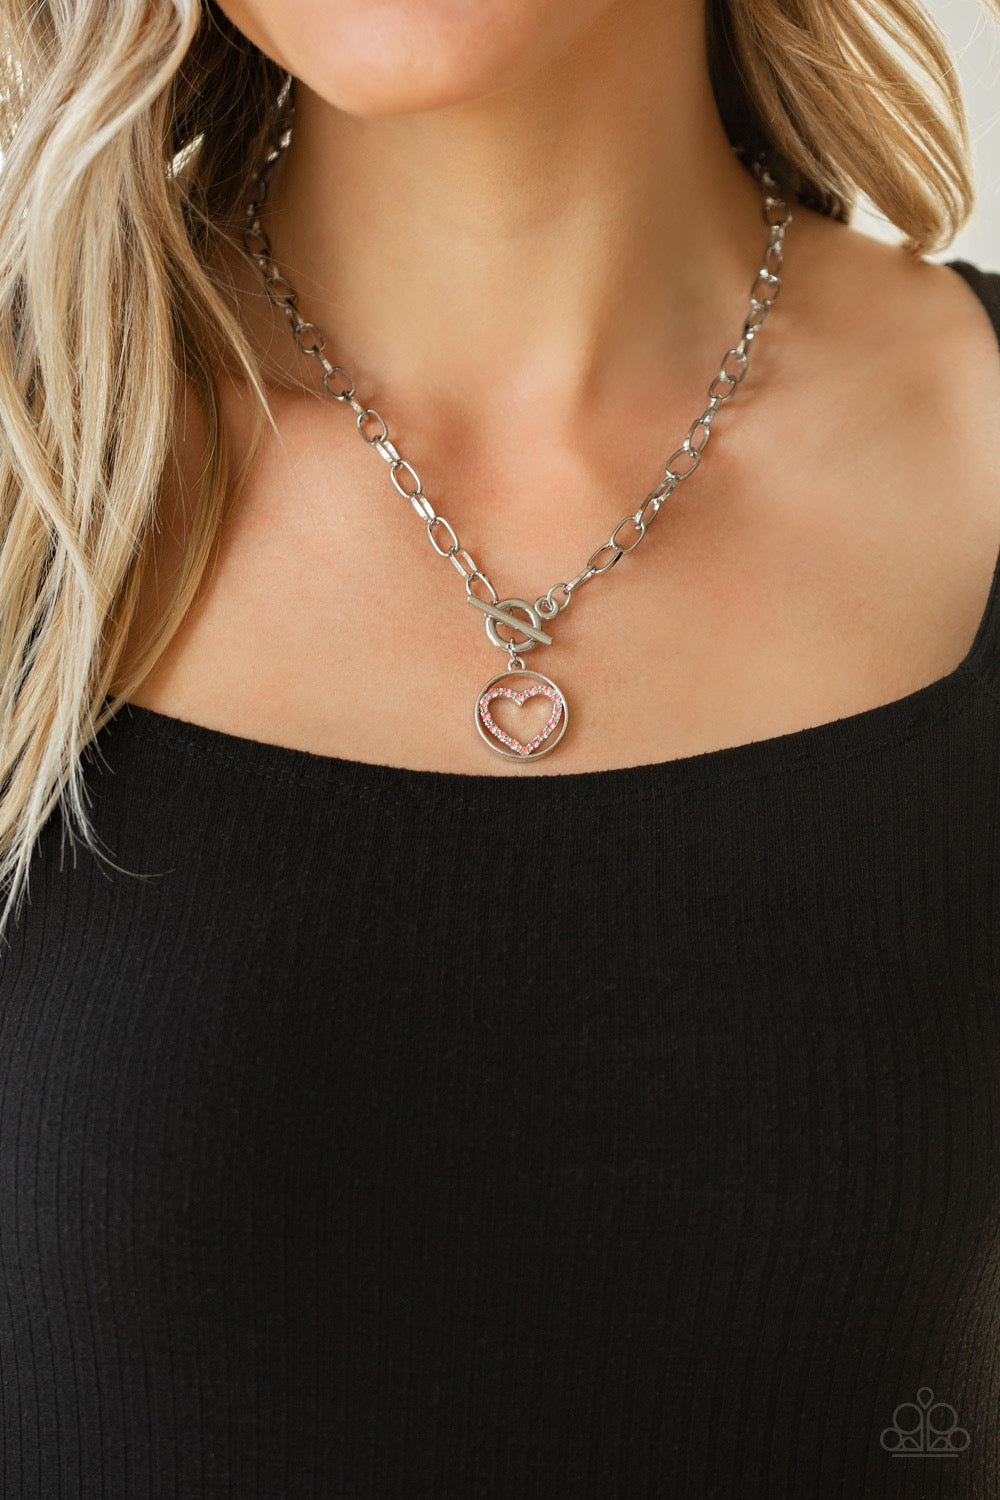 With My Whole Heart - Pink Necklace 1139N